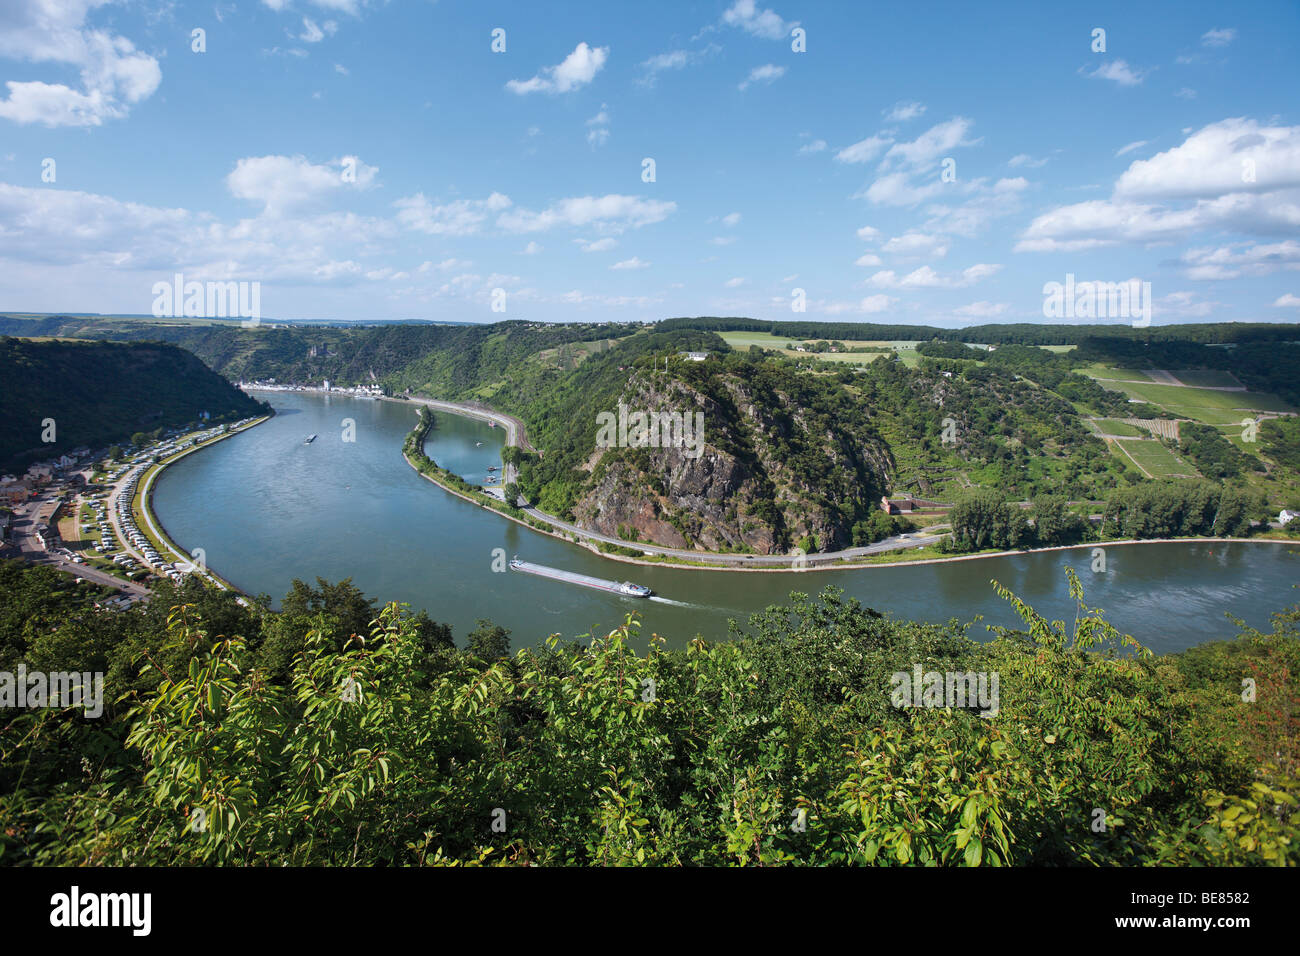 The course of the Rhine in front of Loreley rock, Rhineland-Palatinate, Germany, Europe Stock Photo